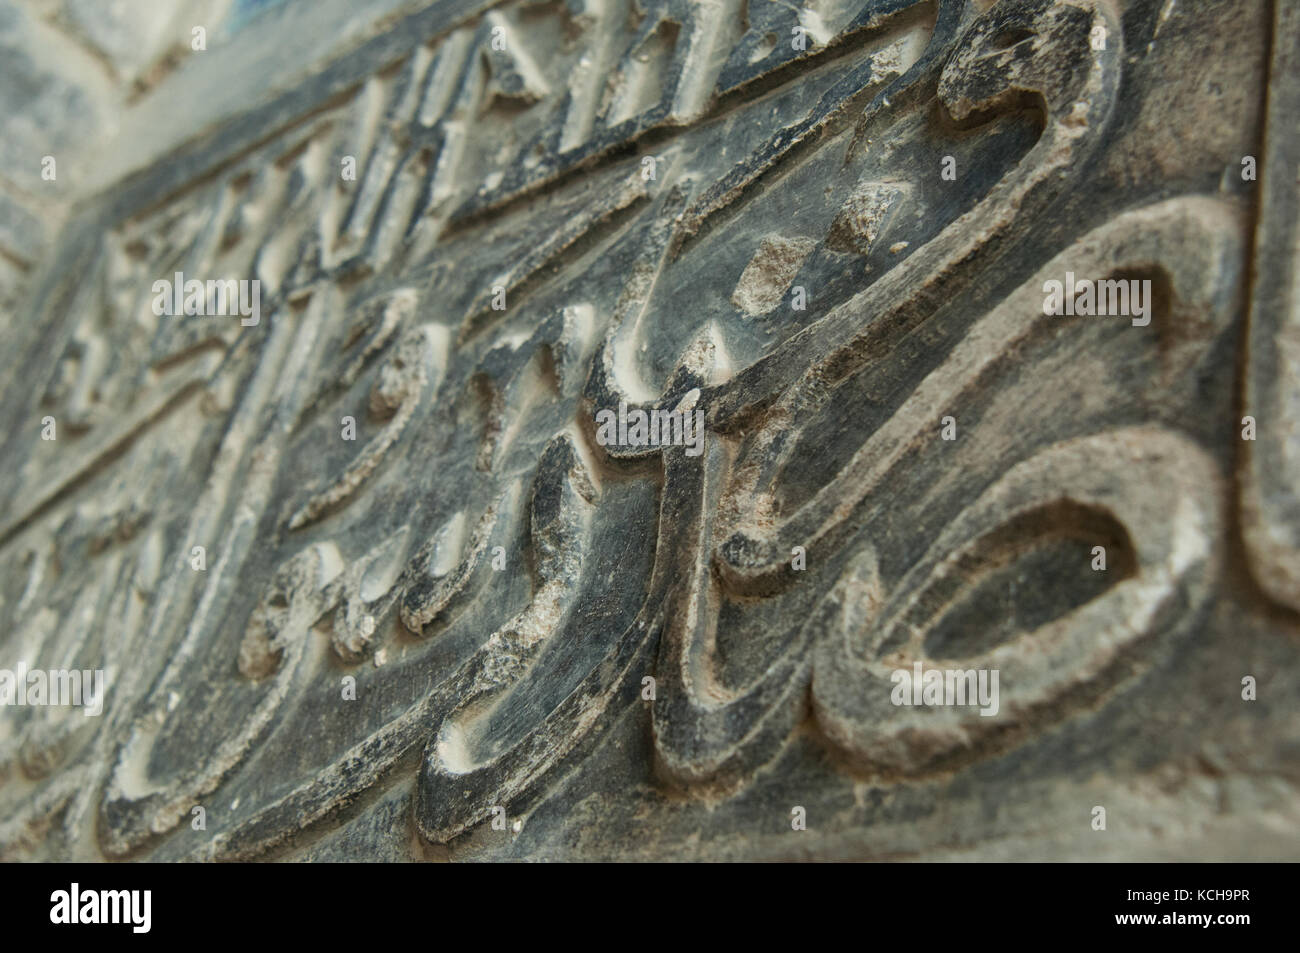 ancient arabic script on the wall - Stock Image